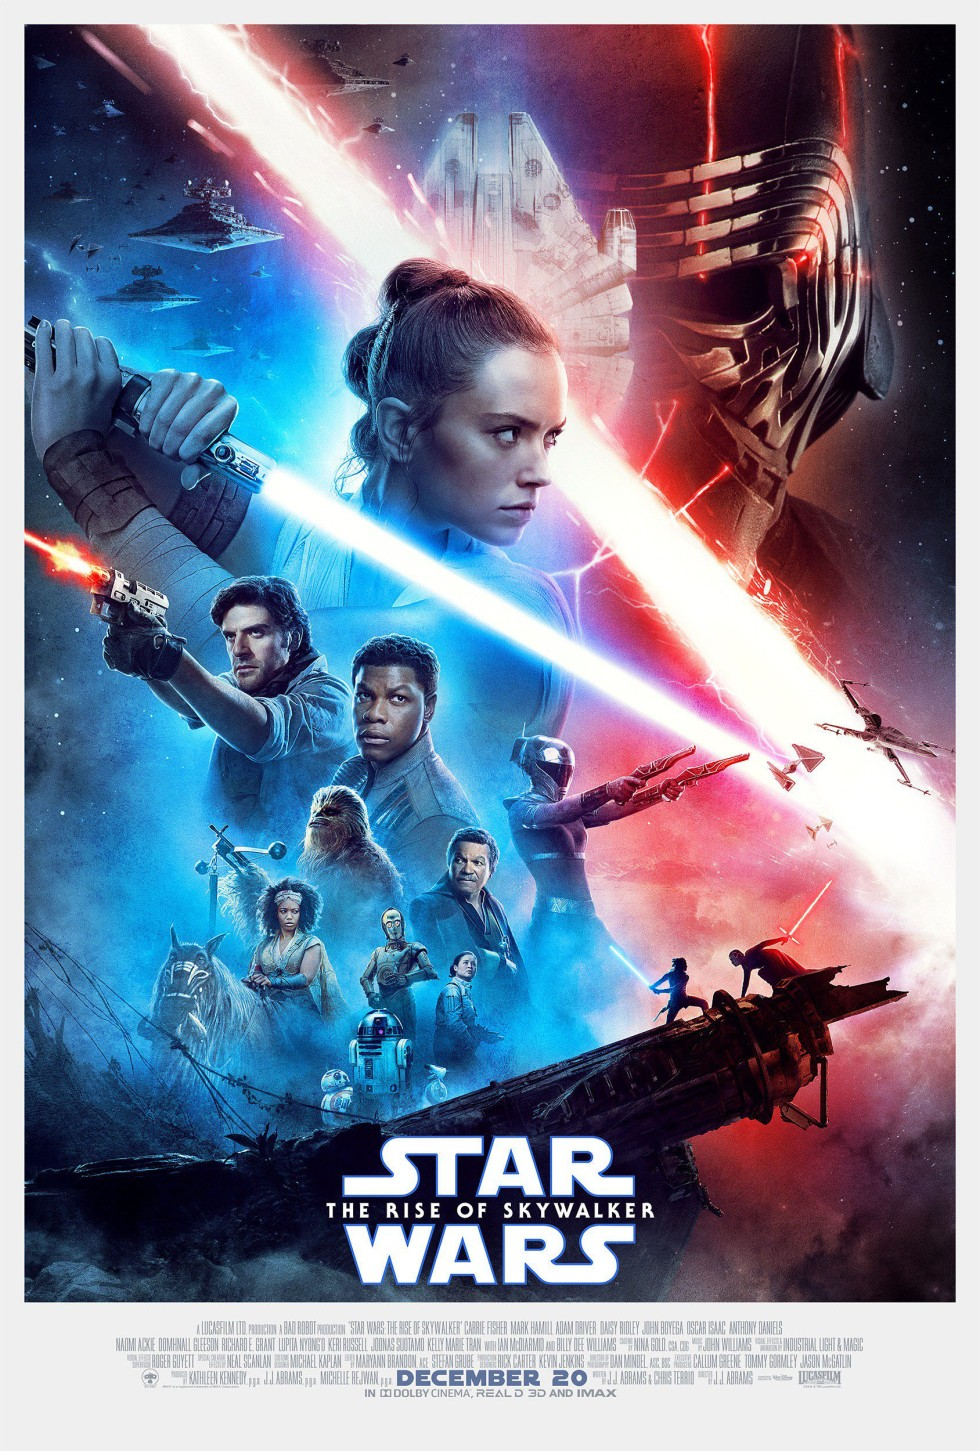 star wars the rise of skywalker official final movie poster Star Wars The Rise of Skywalker OFFICIAL Final Movie Theater Poster